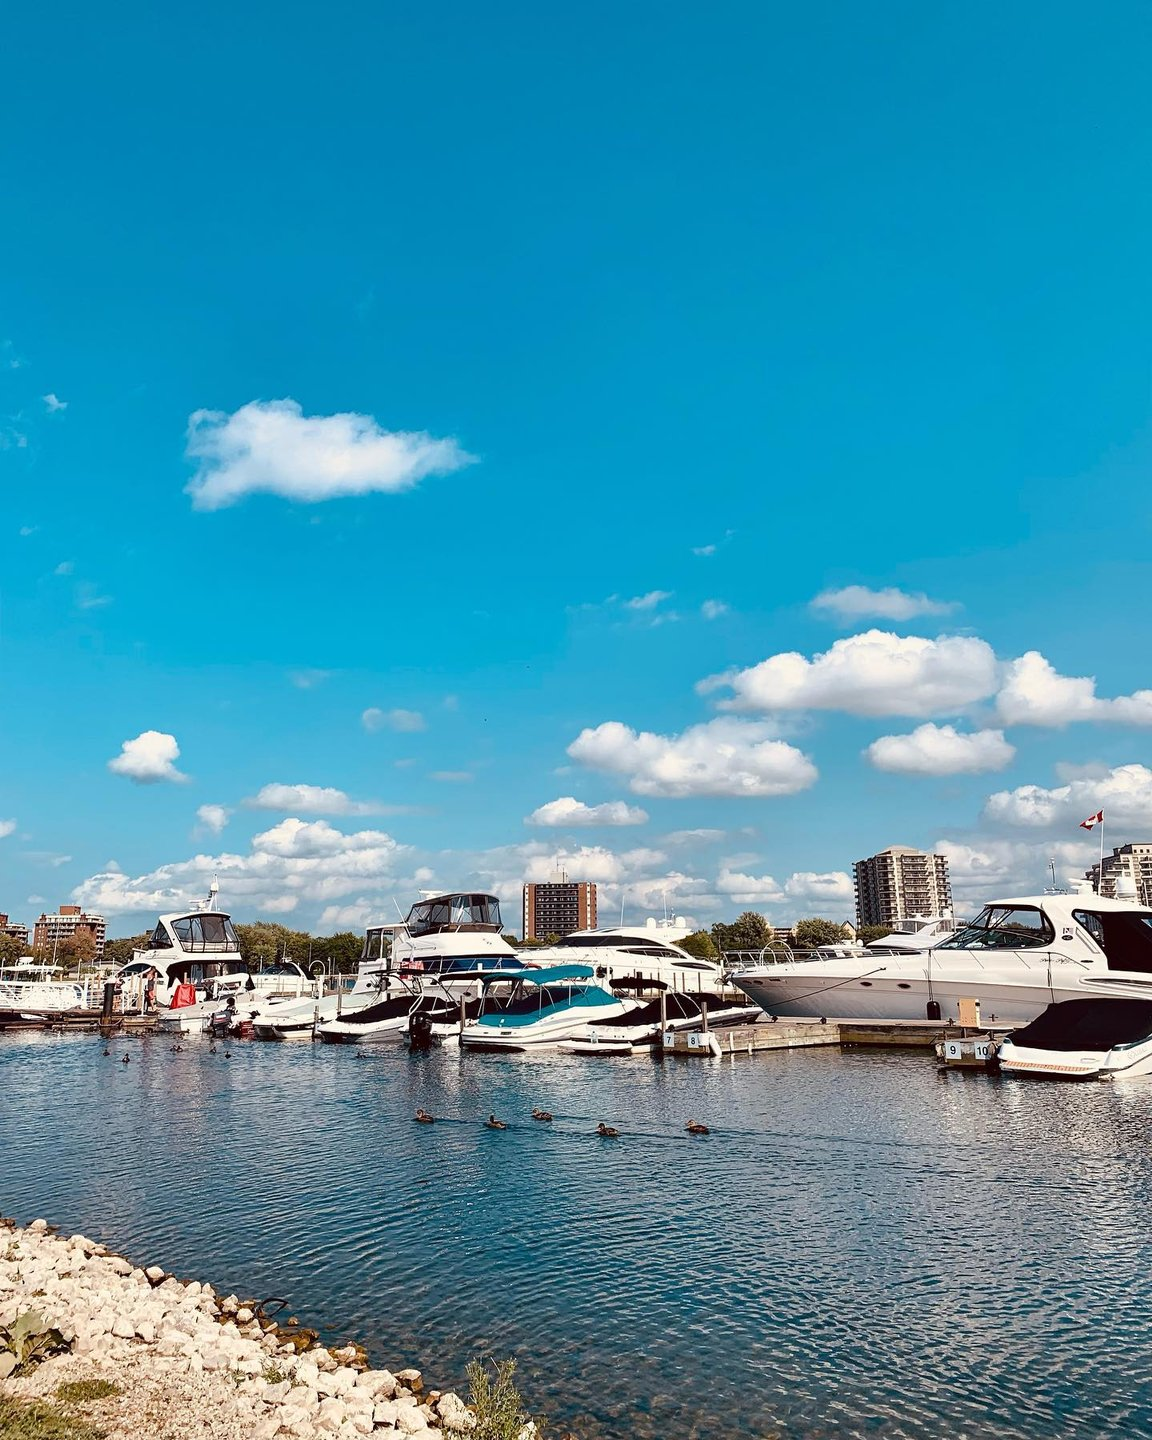 A bright blue clear sky with a few clouds above a multitude of luxury boats moored at a marina